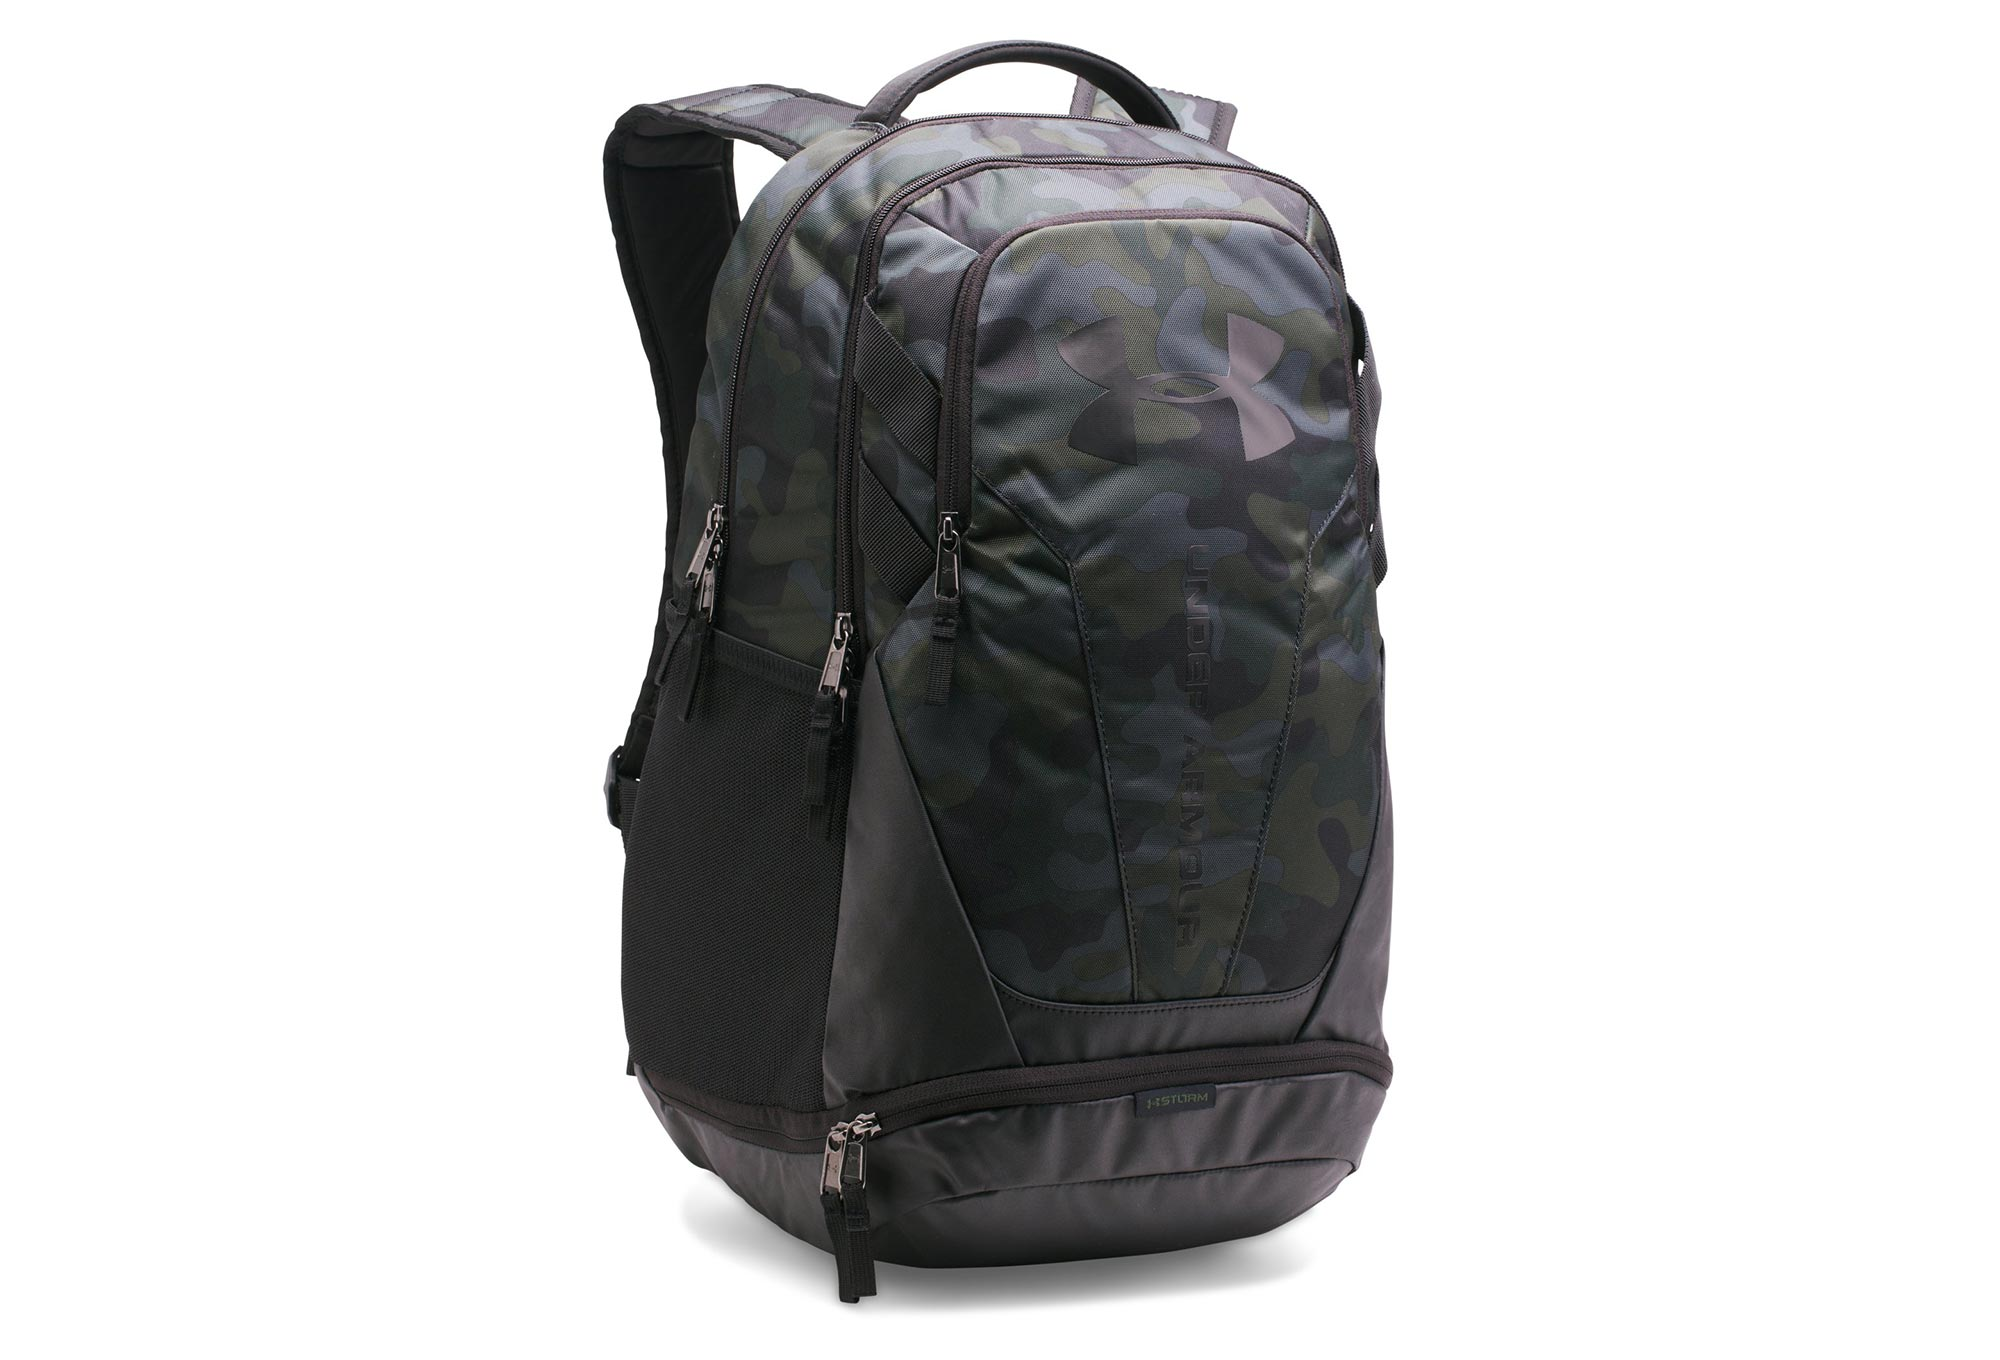 57c28dfcee Under Armour Hustle 3.0 Backpack Camo